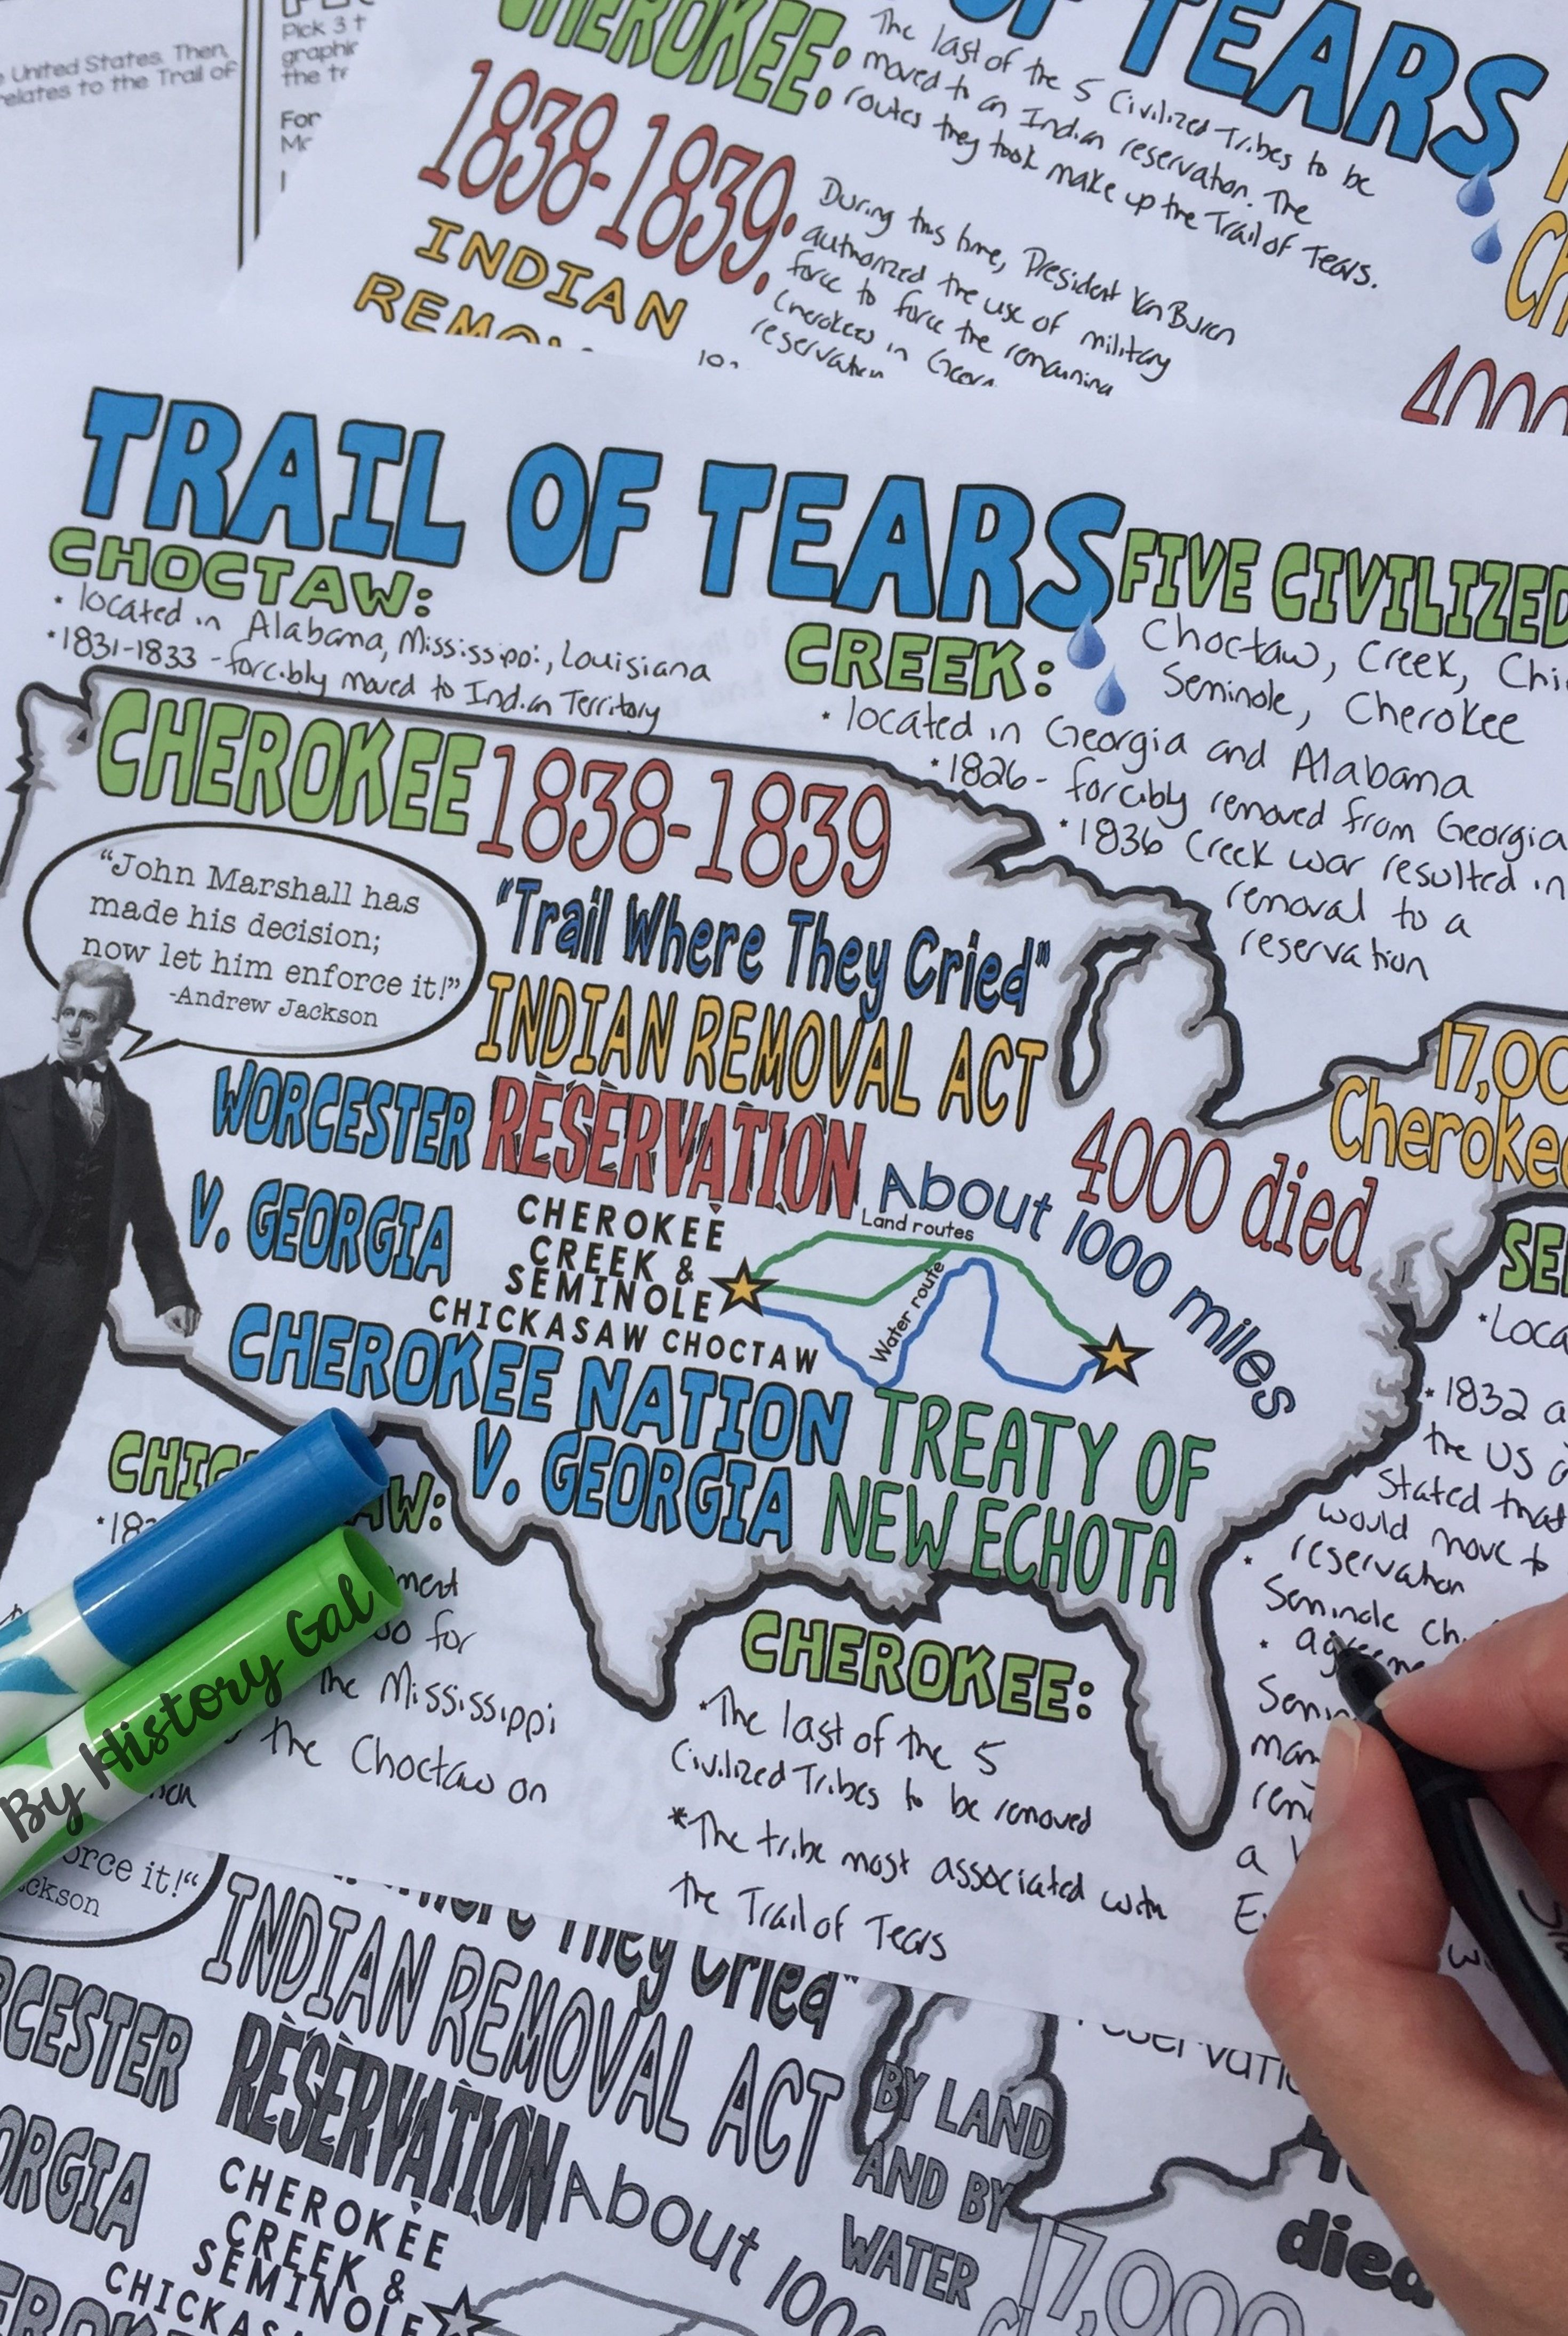 a history of the trail of tears When cherokees around chattanooga speak of the trail of tears, they express a need, surely older than history, to stand on the soil of particular ancestral sites and invoke the time that made these places sacred.